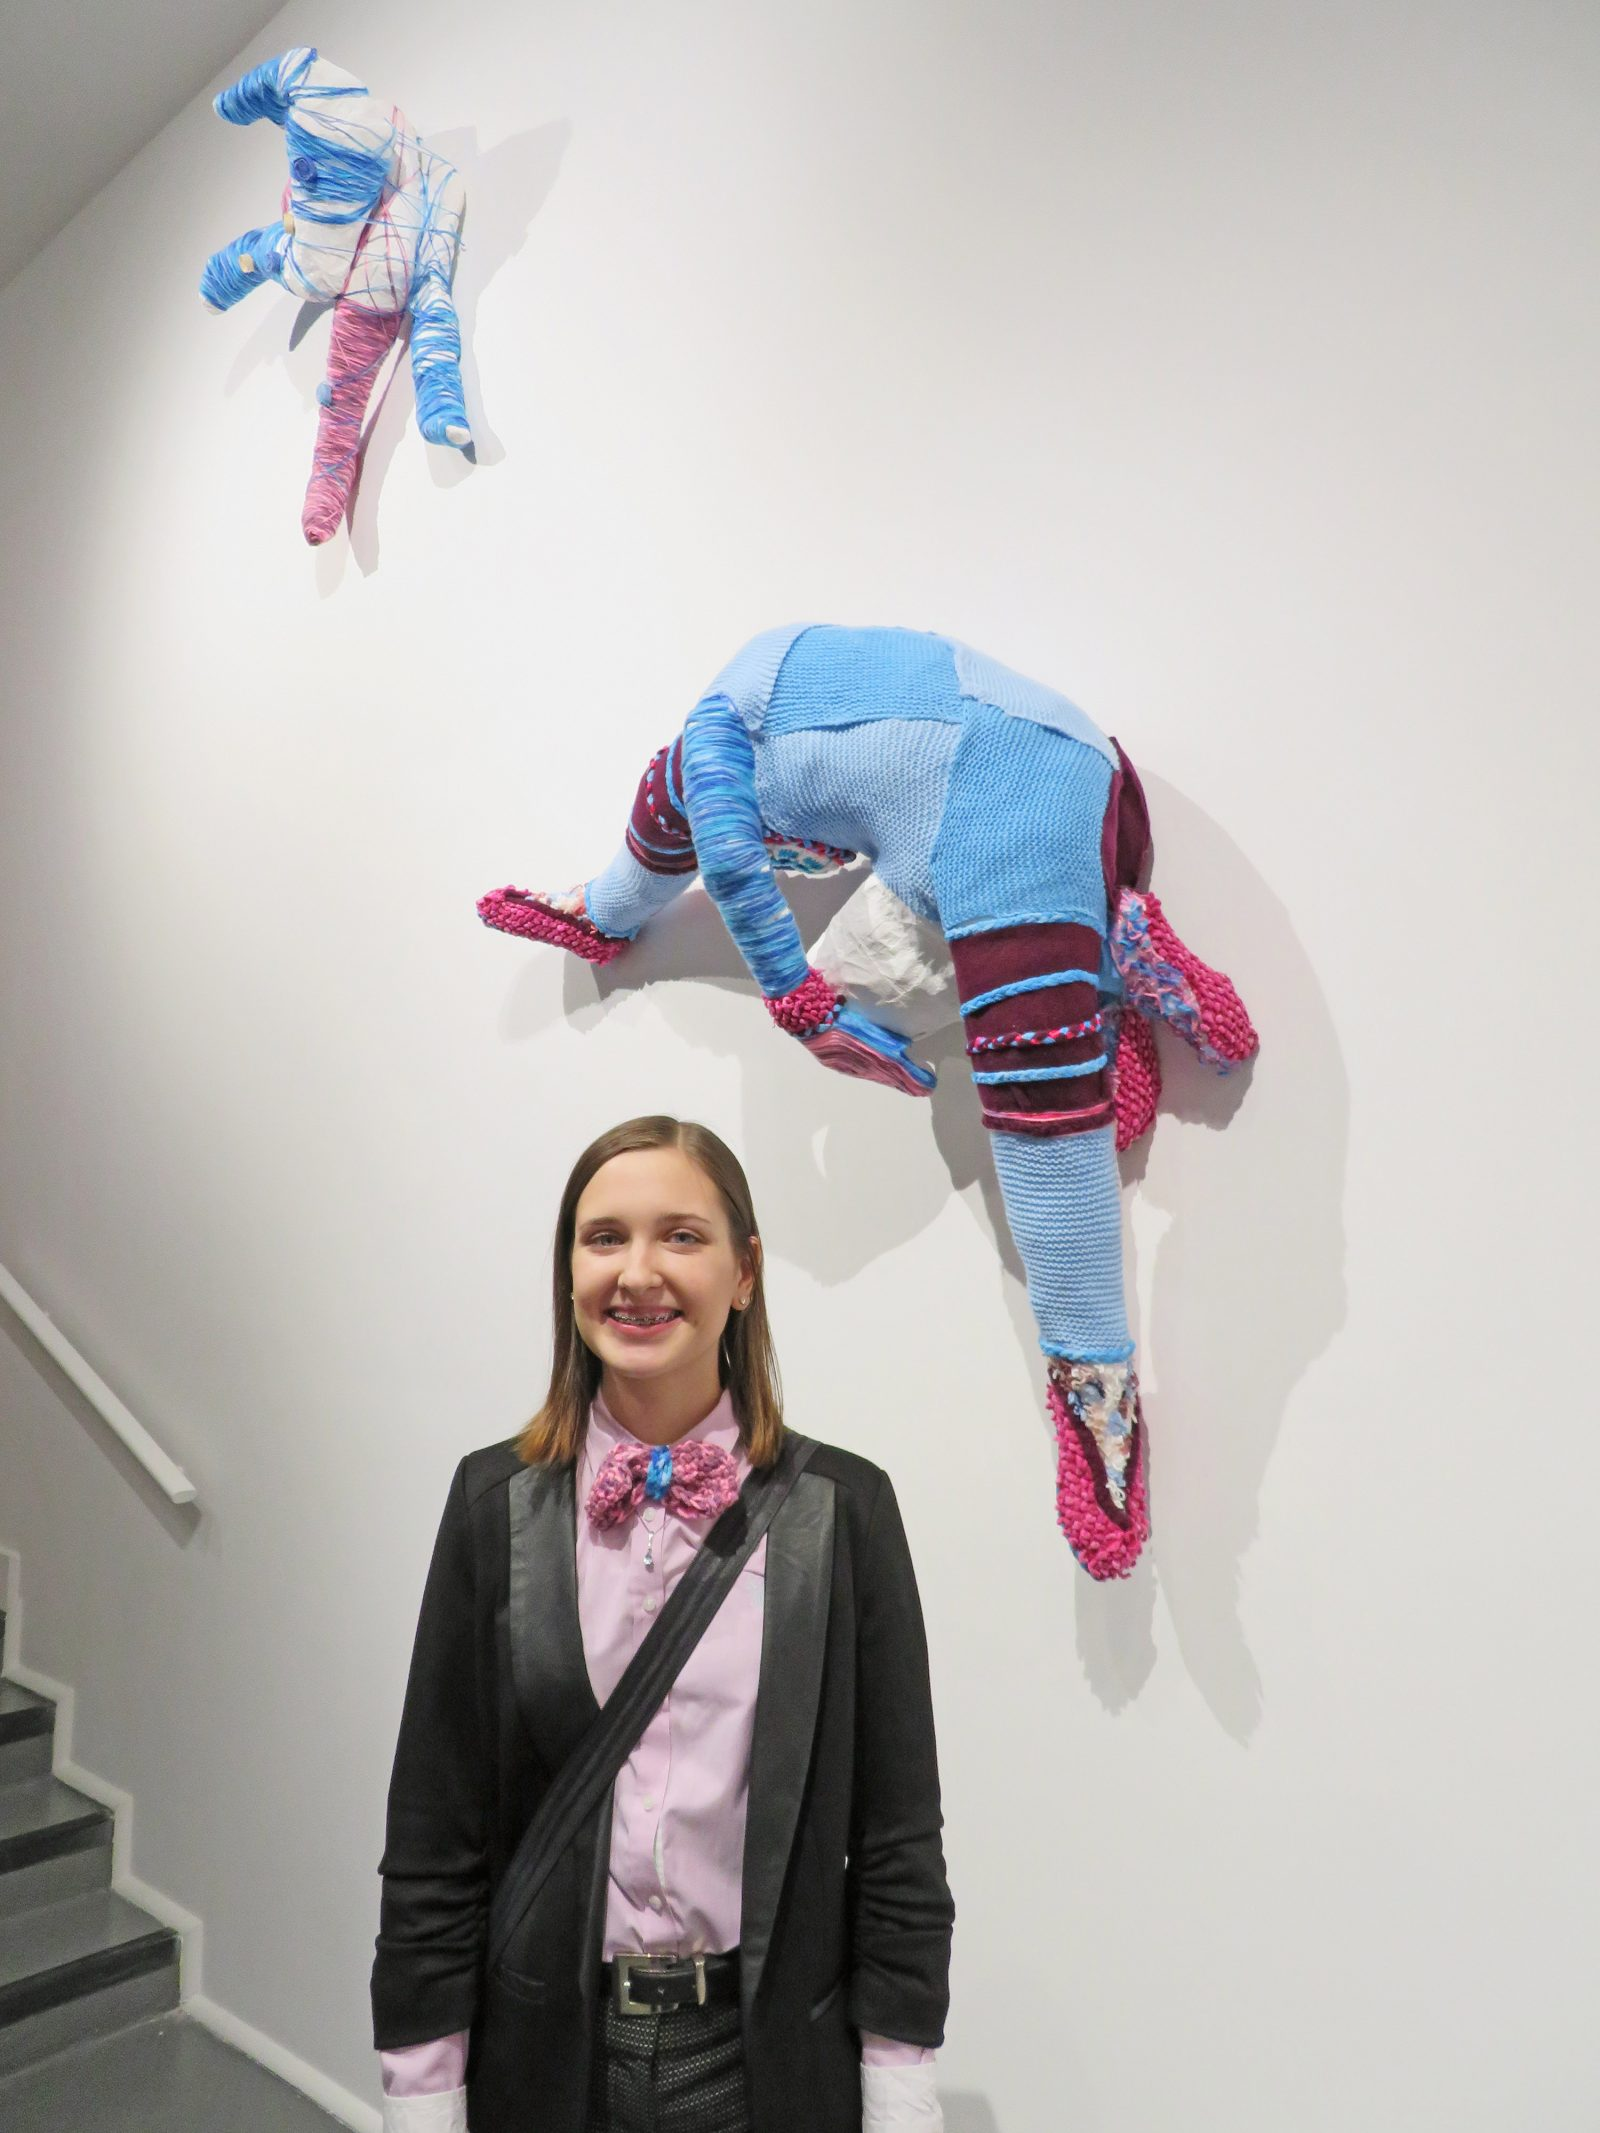 Victoria Reid was recently honoured for her artwork, which was on display at Rodman Hall Art Centre as part of the Turnin' this Car Around exhibition in April.